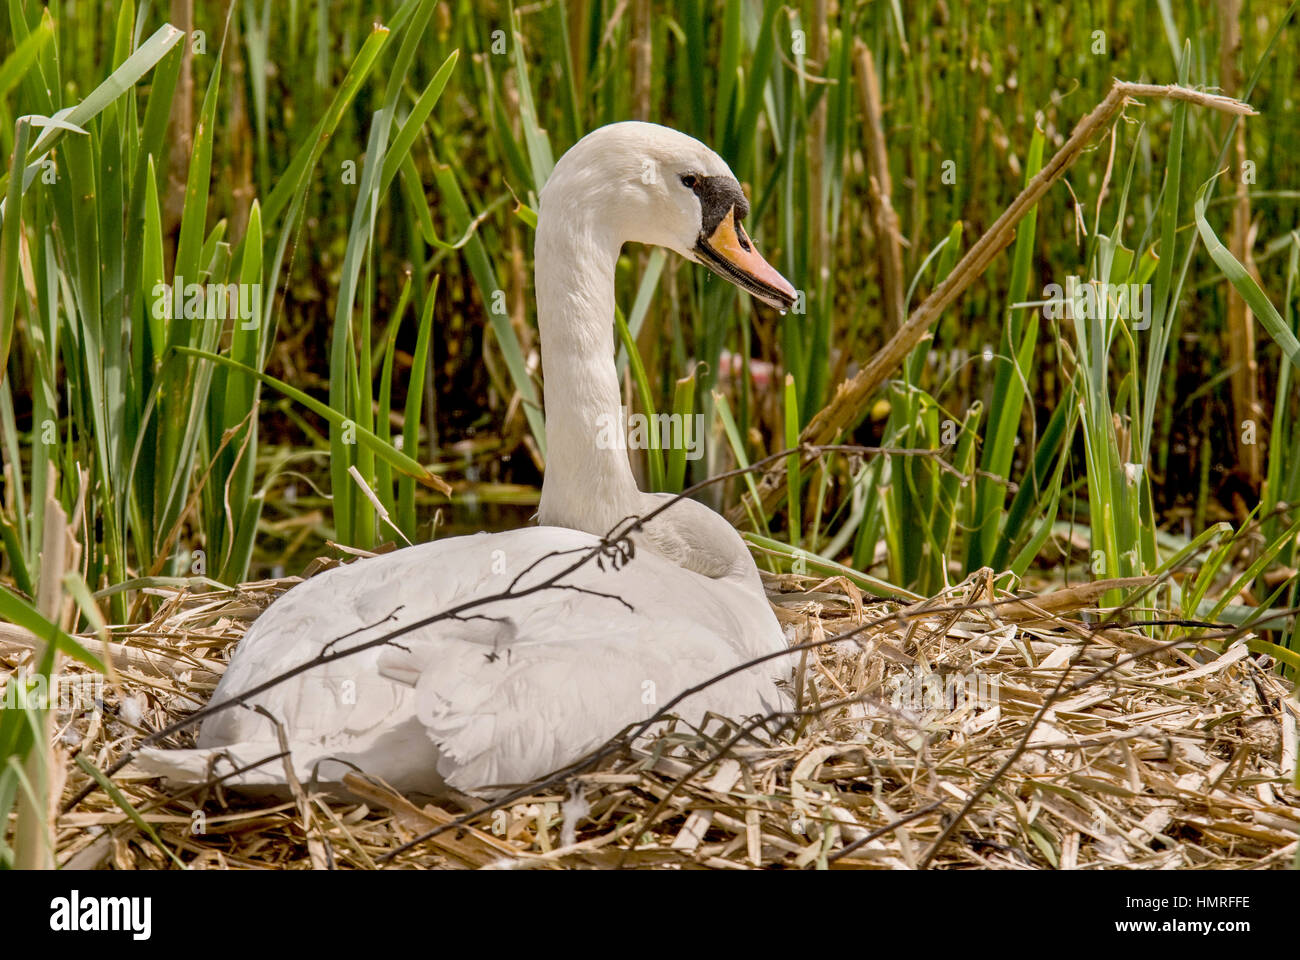 A mute swan sitting on its nest. - Stock Image